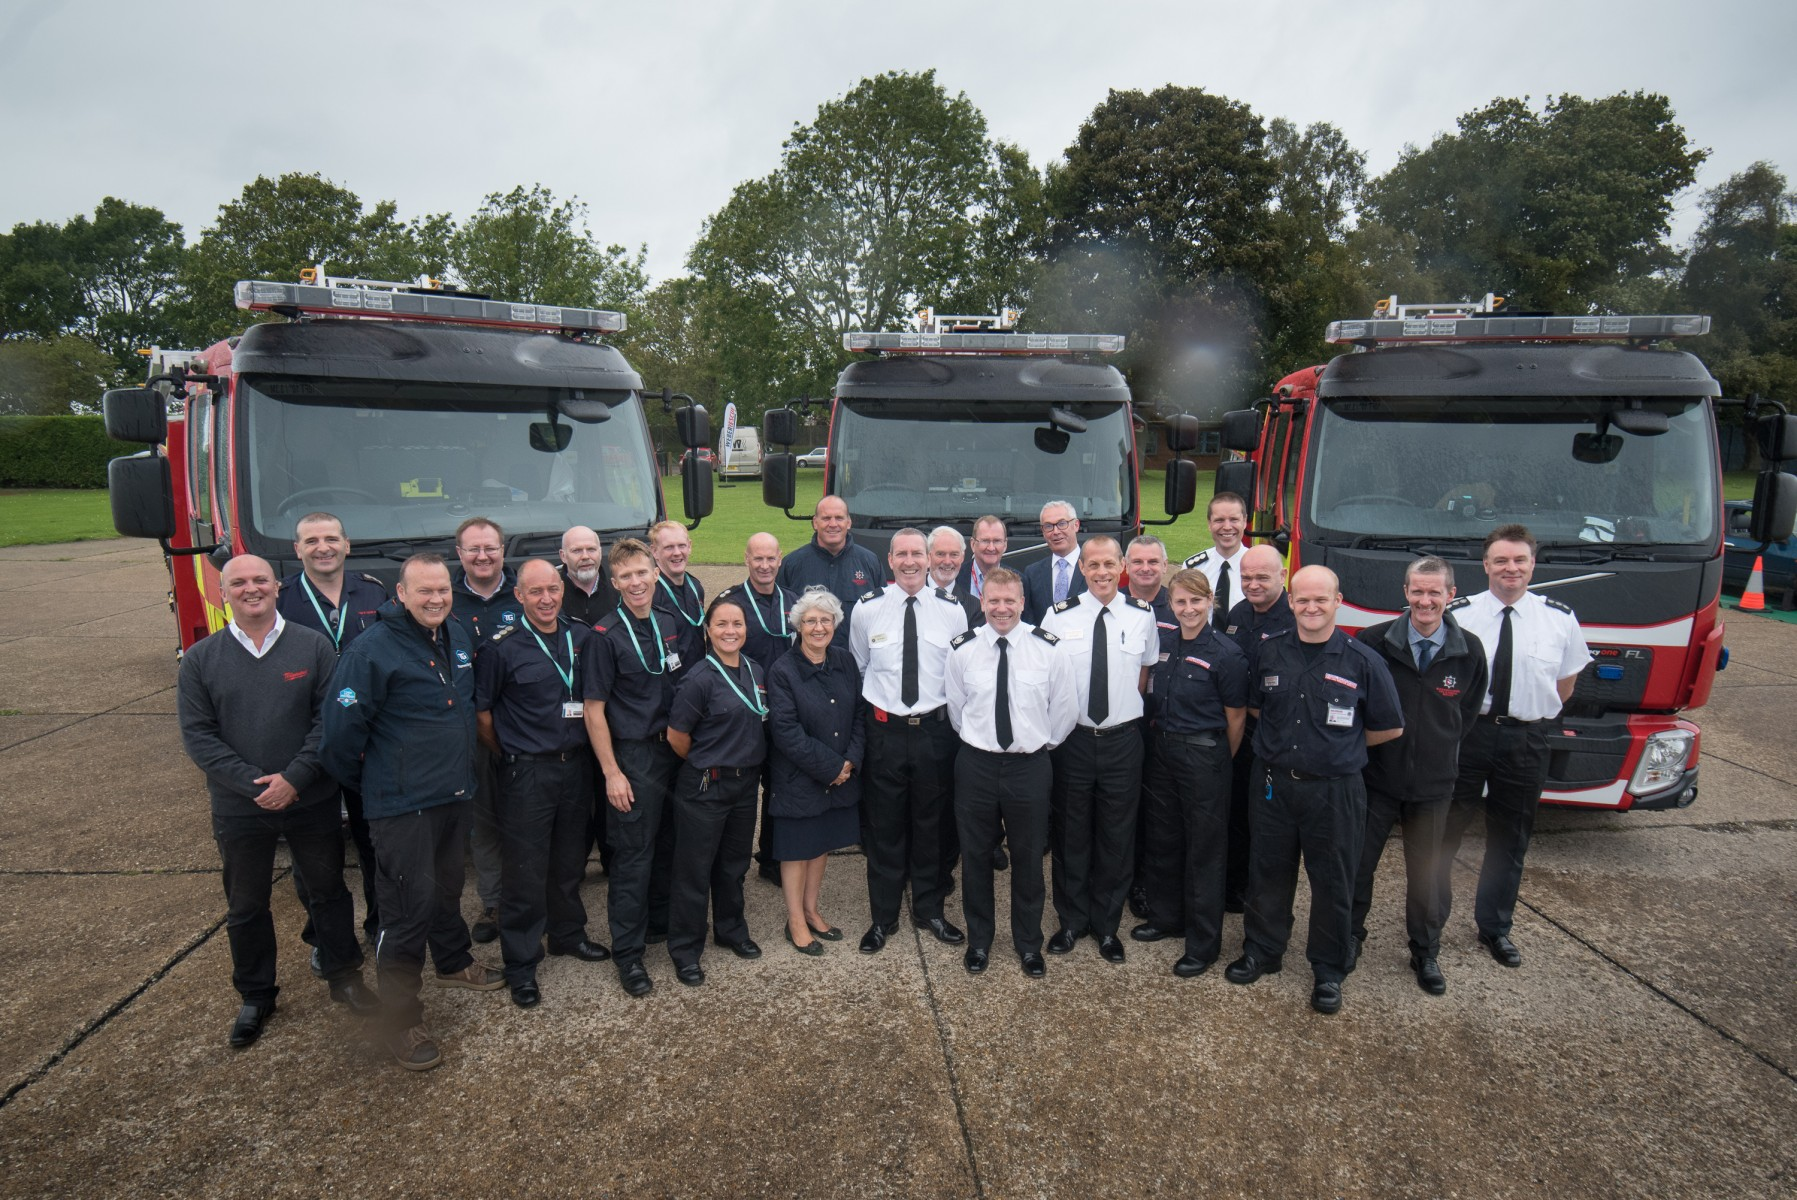 Thames Valley fire and rescue services collaborate on next generation of fire engines